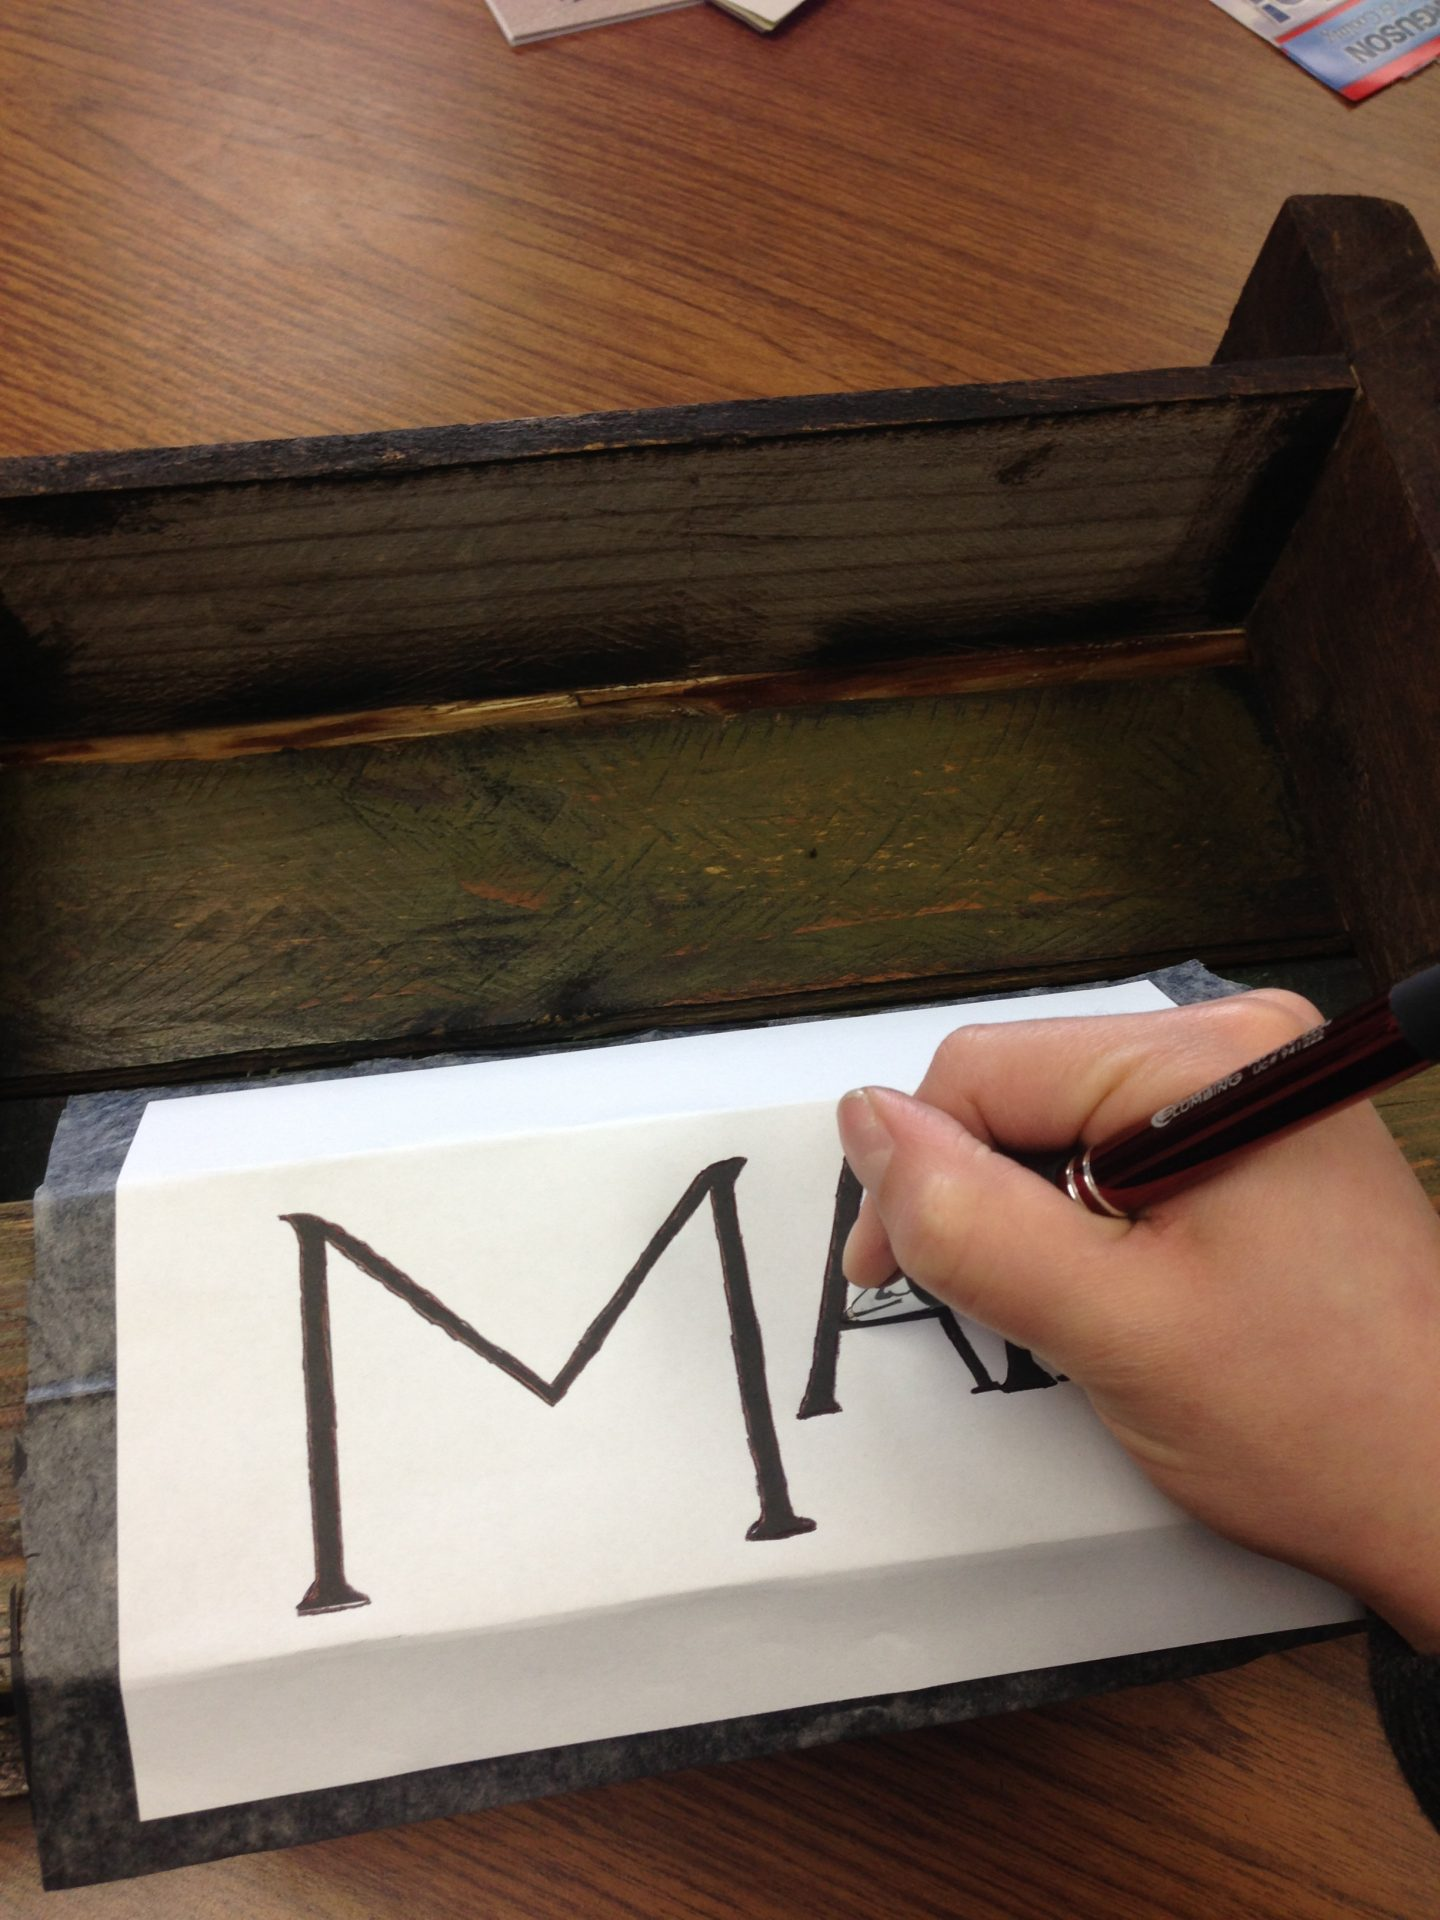 Transferring Images and Words to a Wood Surface